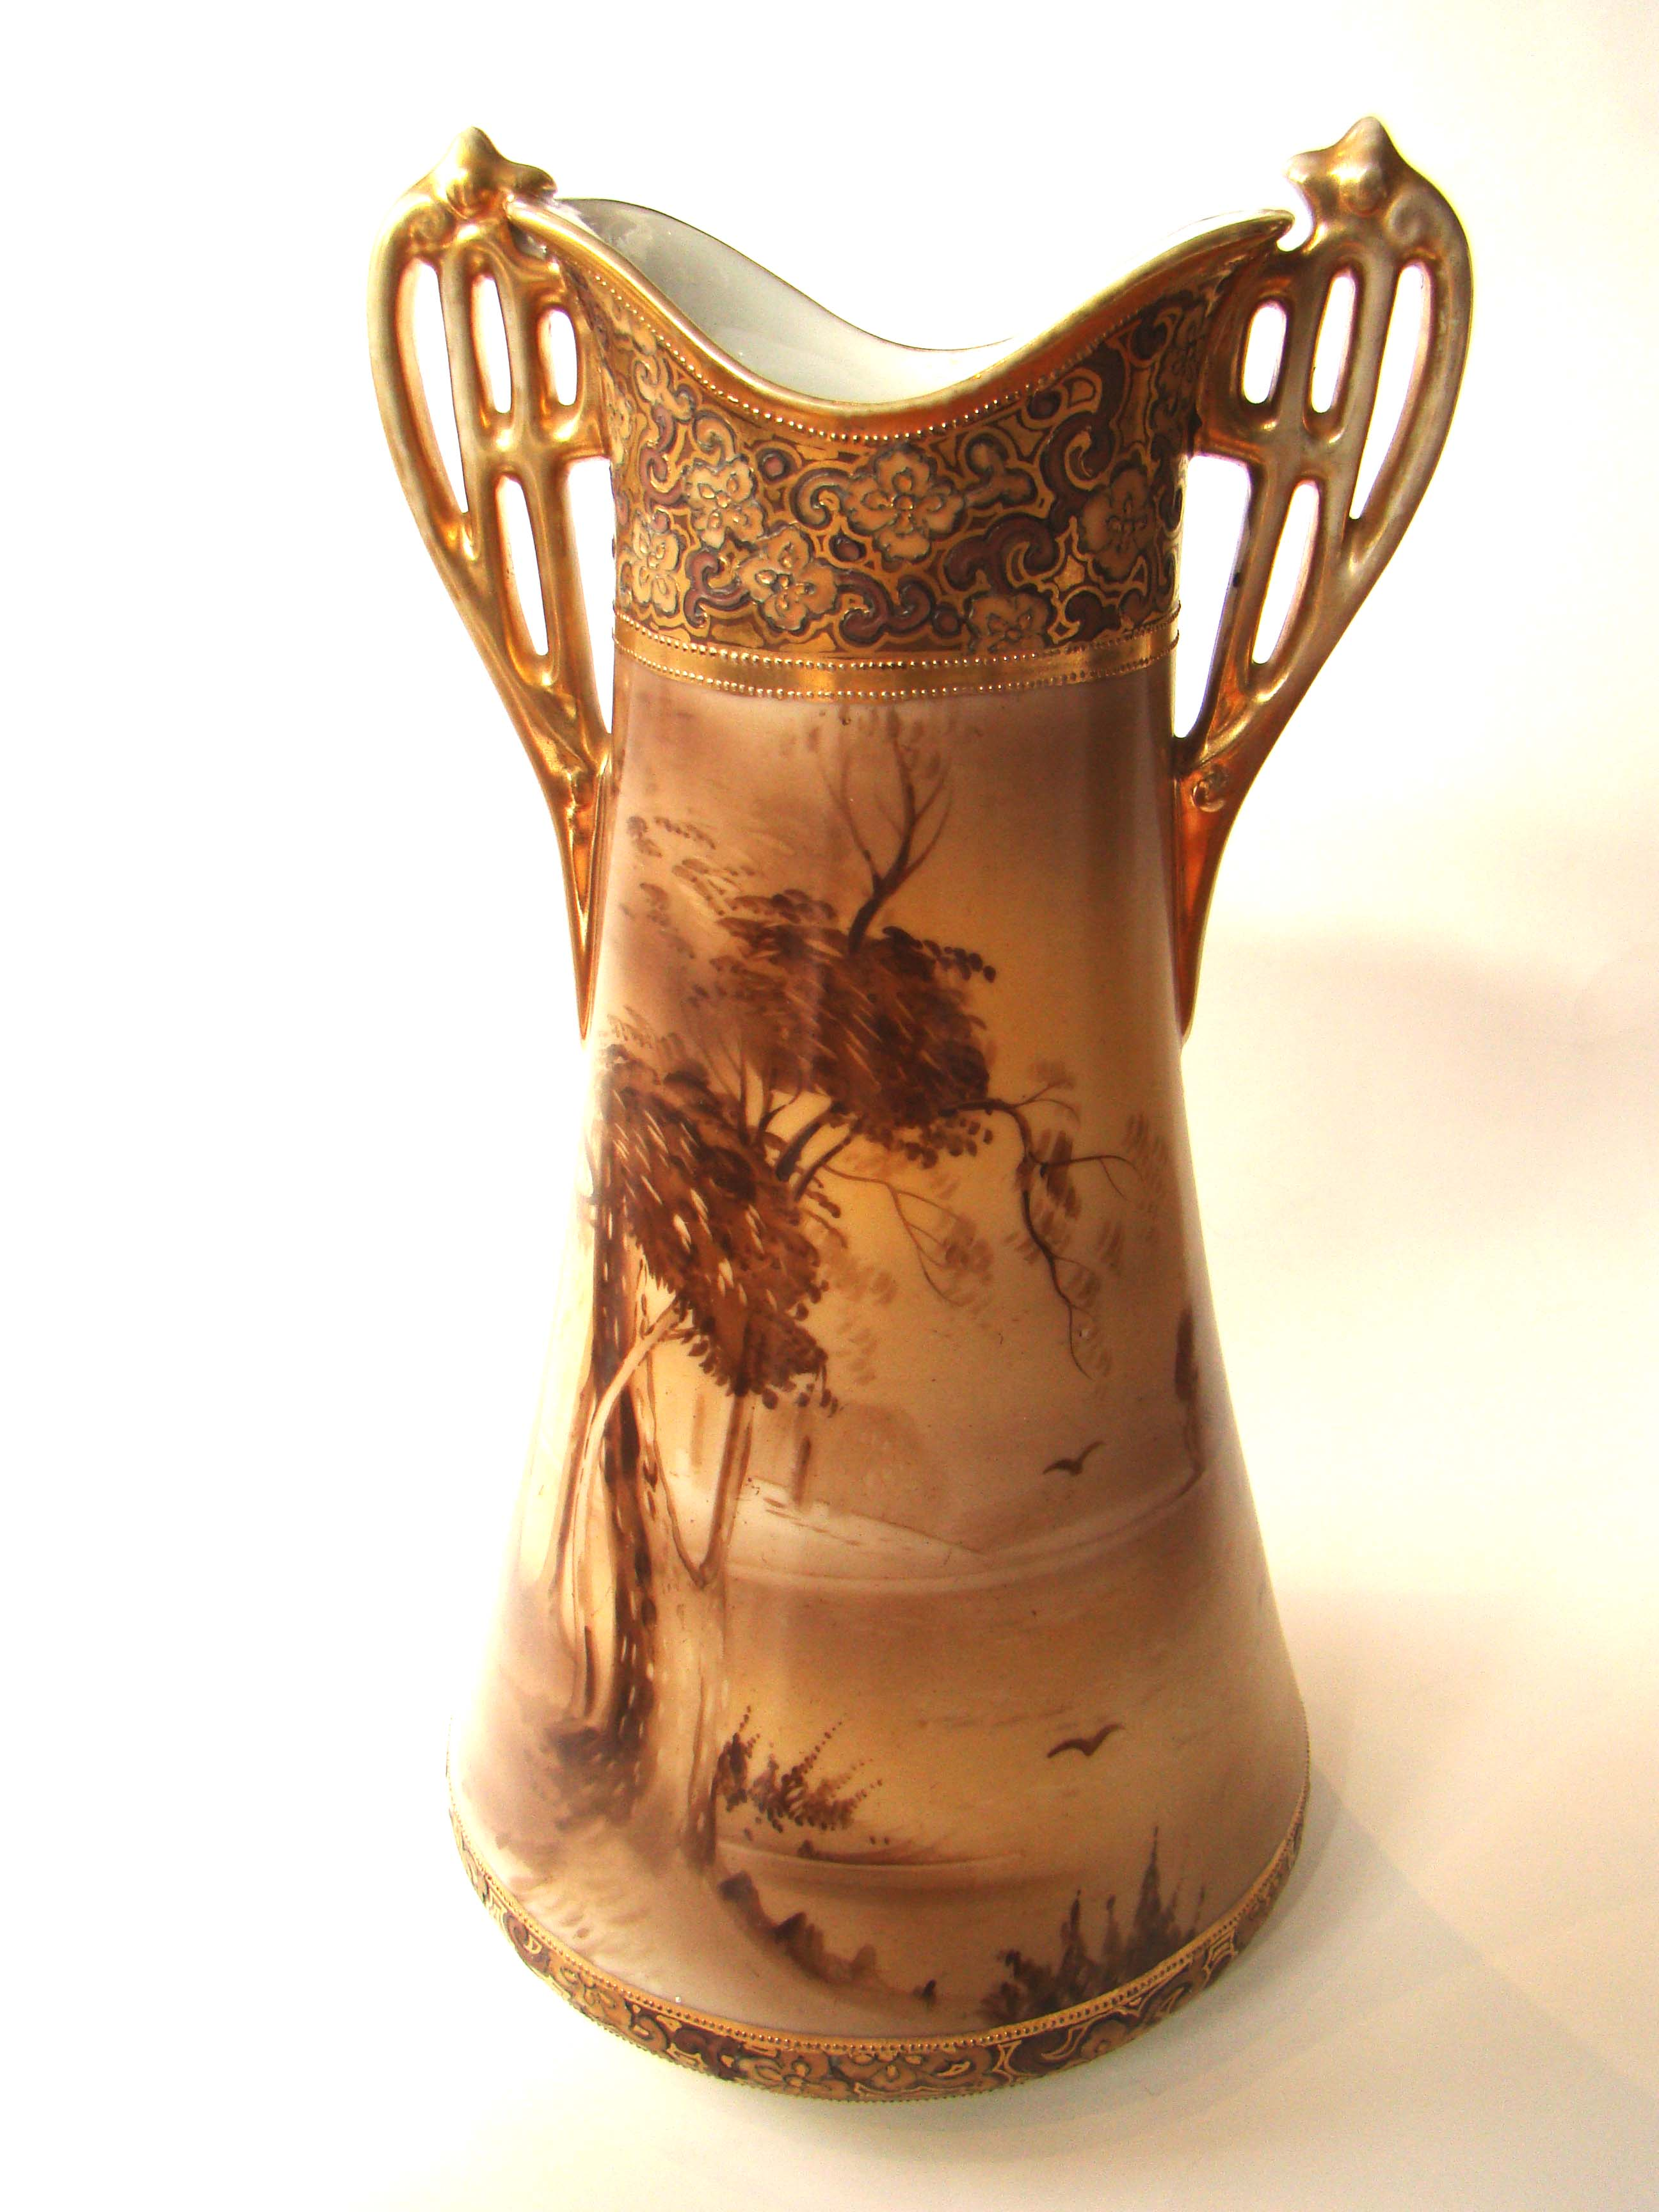 click to view detailed description of A fabulous vintage hand painted NIPPON two handled vase with gilt decoration circa 1900